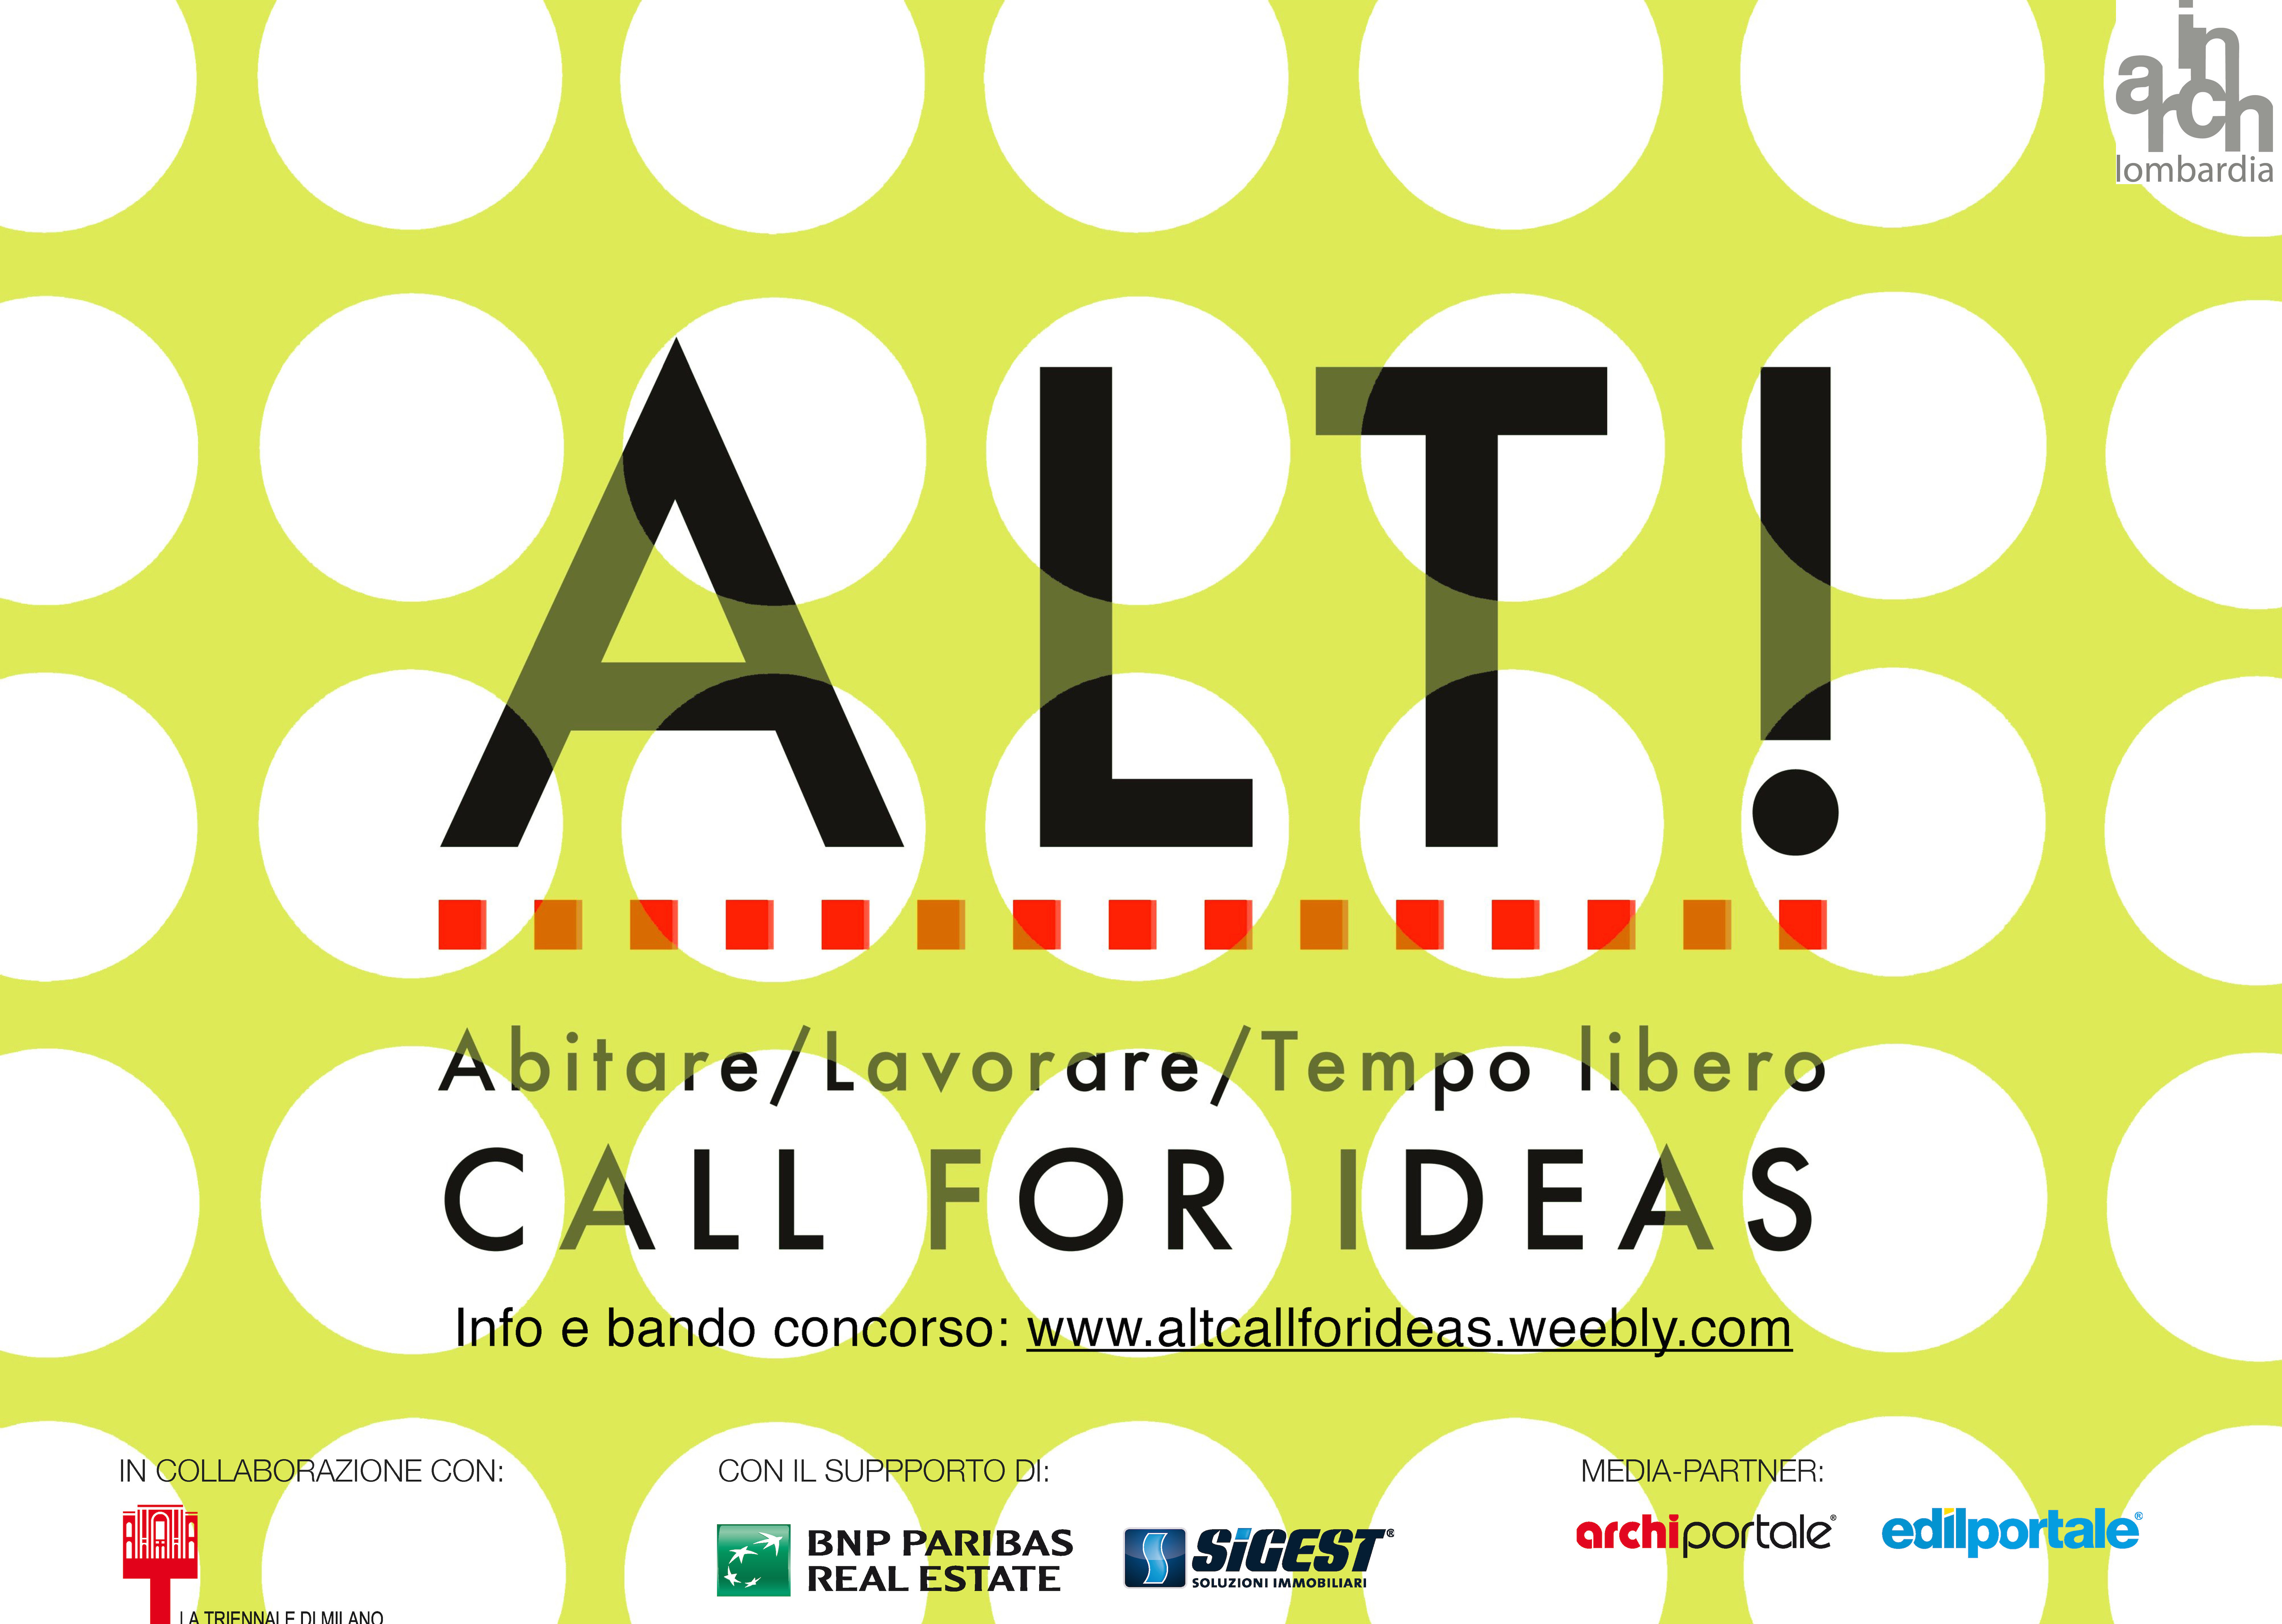 ALT! CALL FOR IDEAS